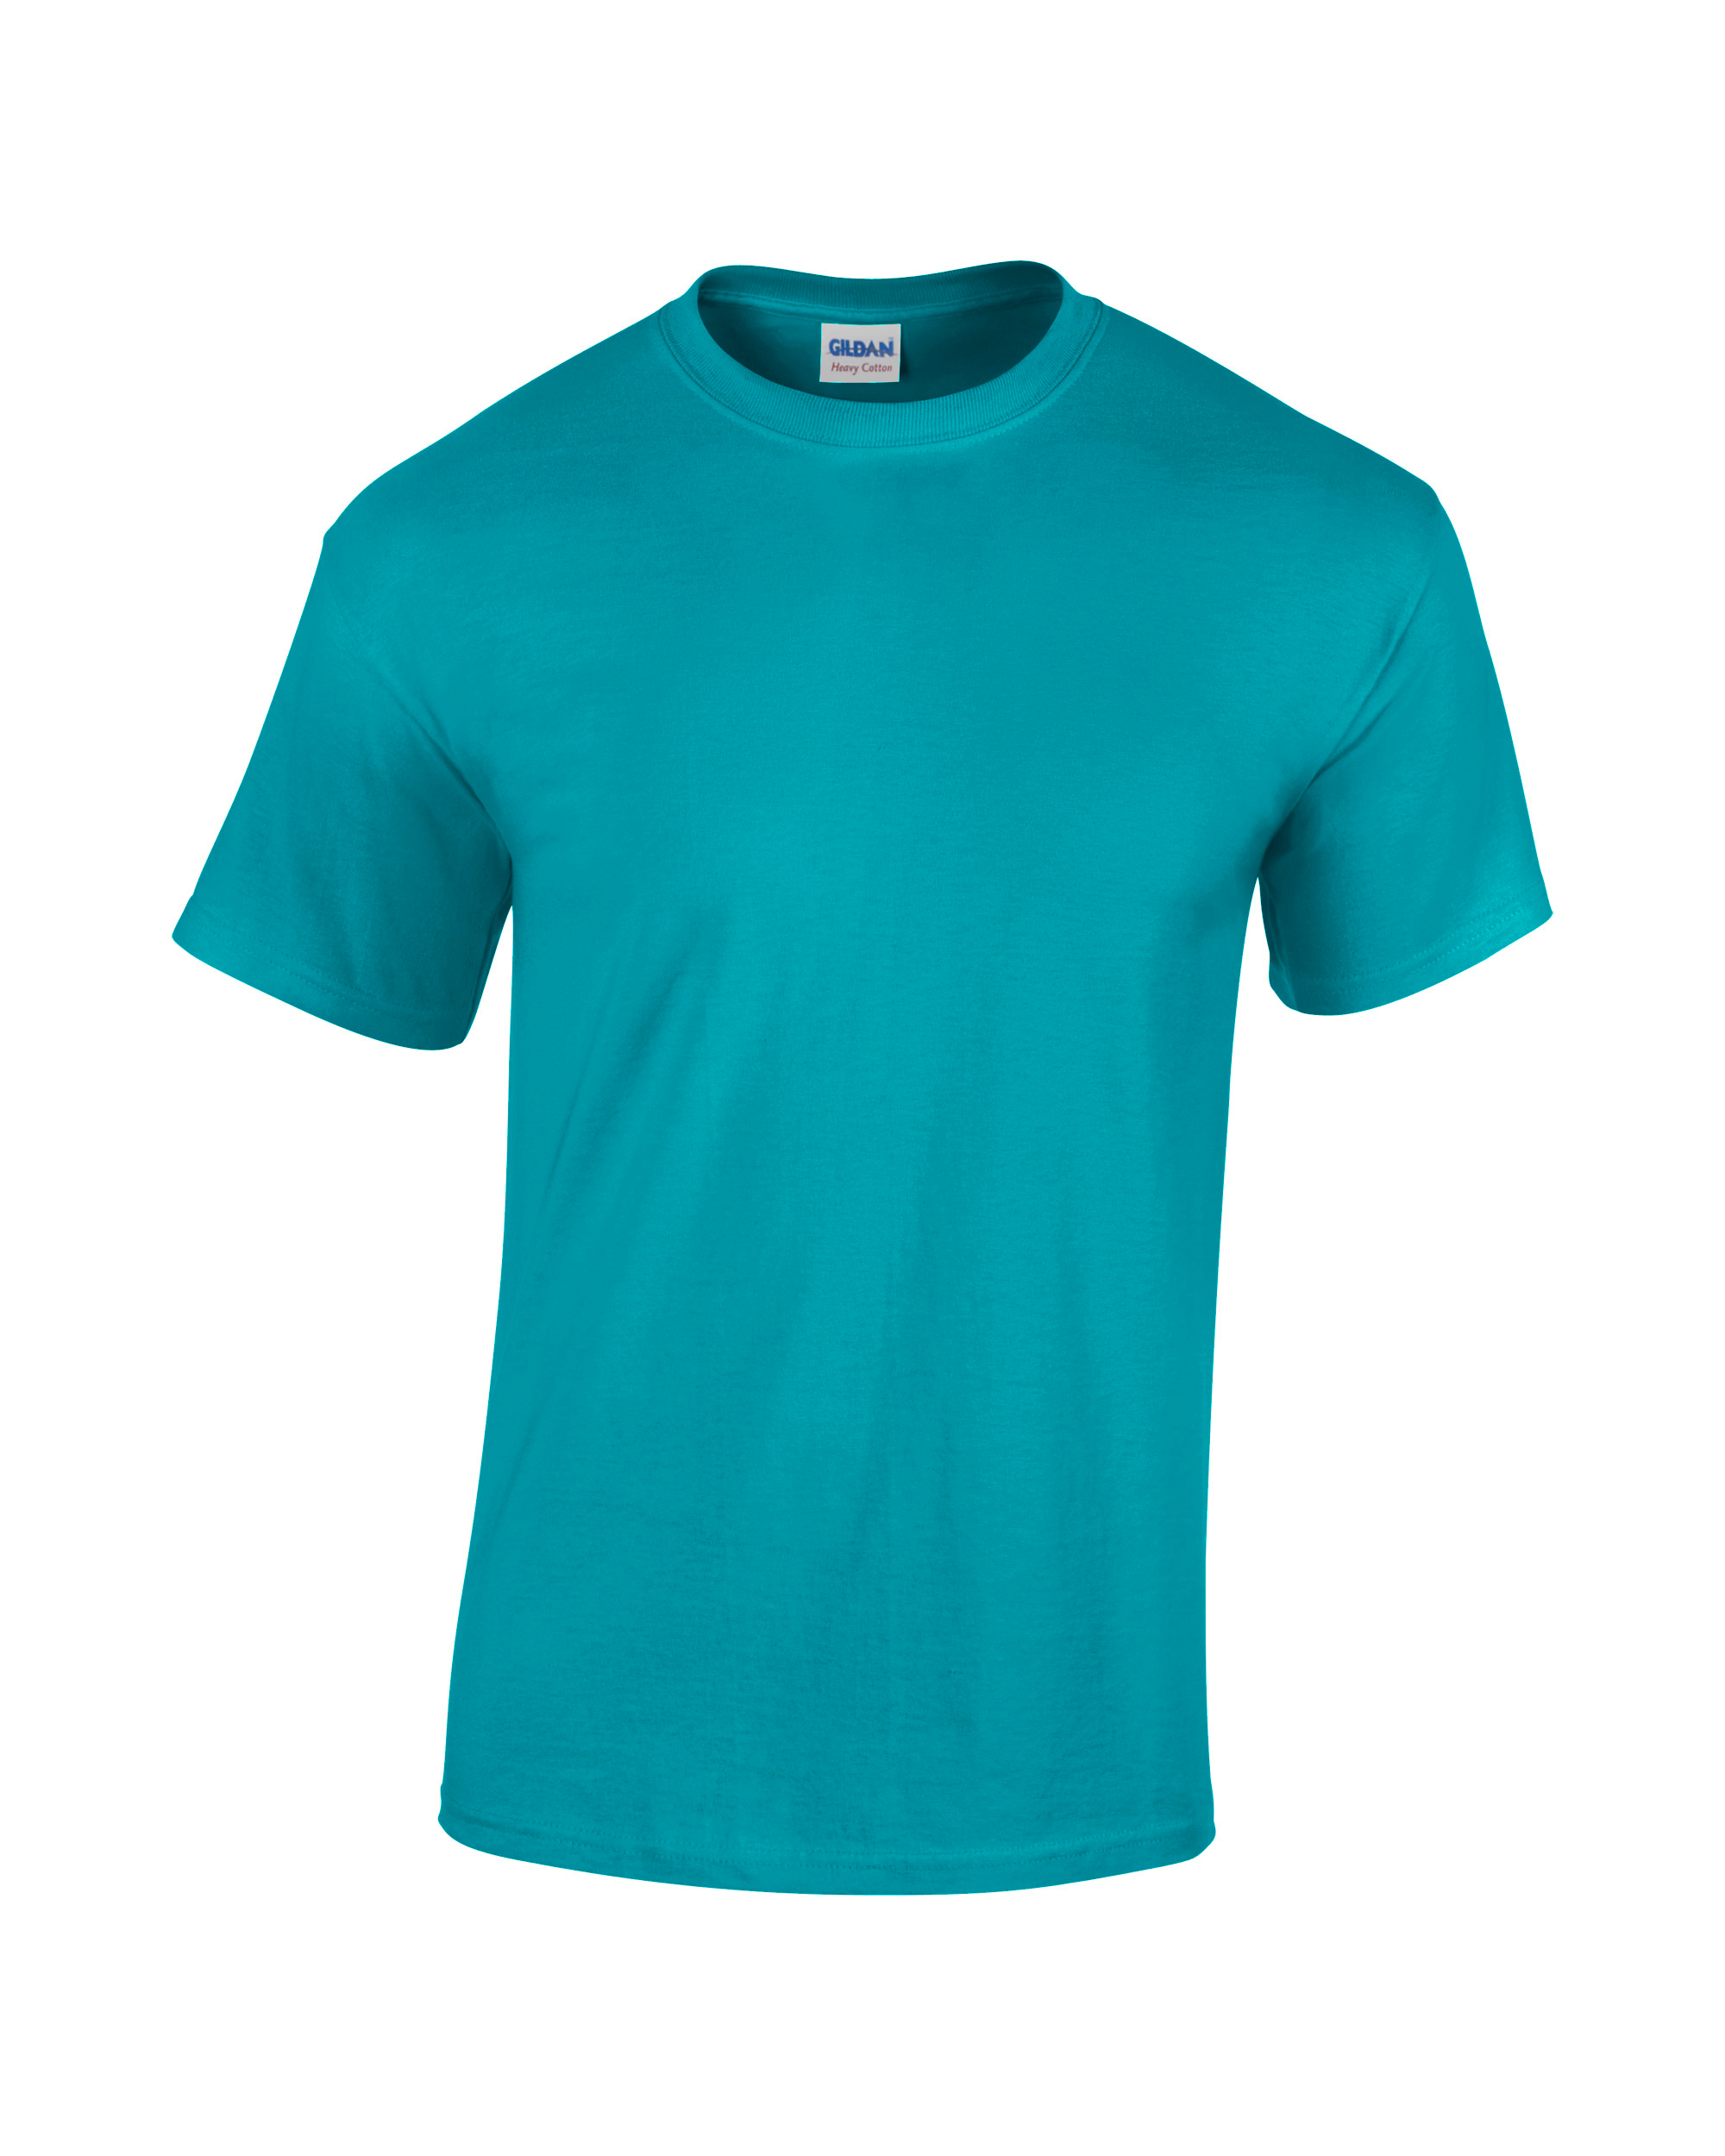 777eca7fbf Unisex Gildan Heavy Cotton™ 5.3 oz. T‑Shirt